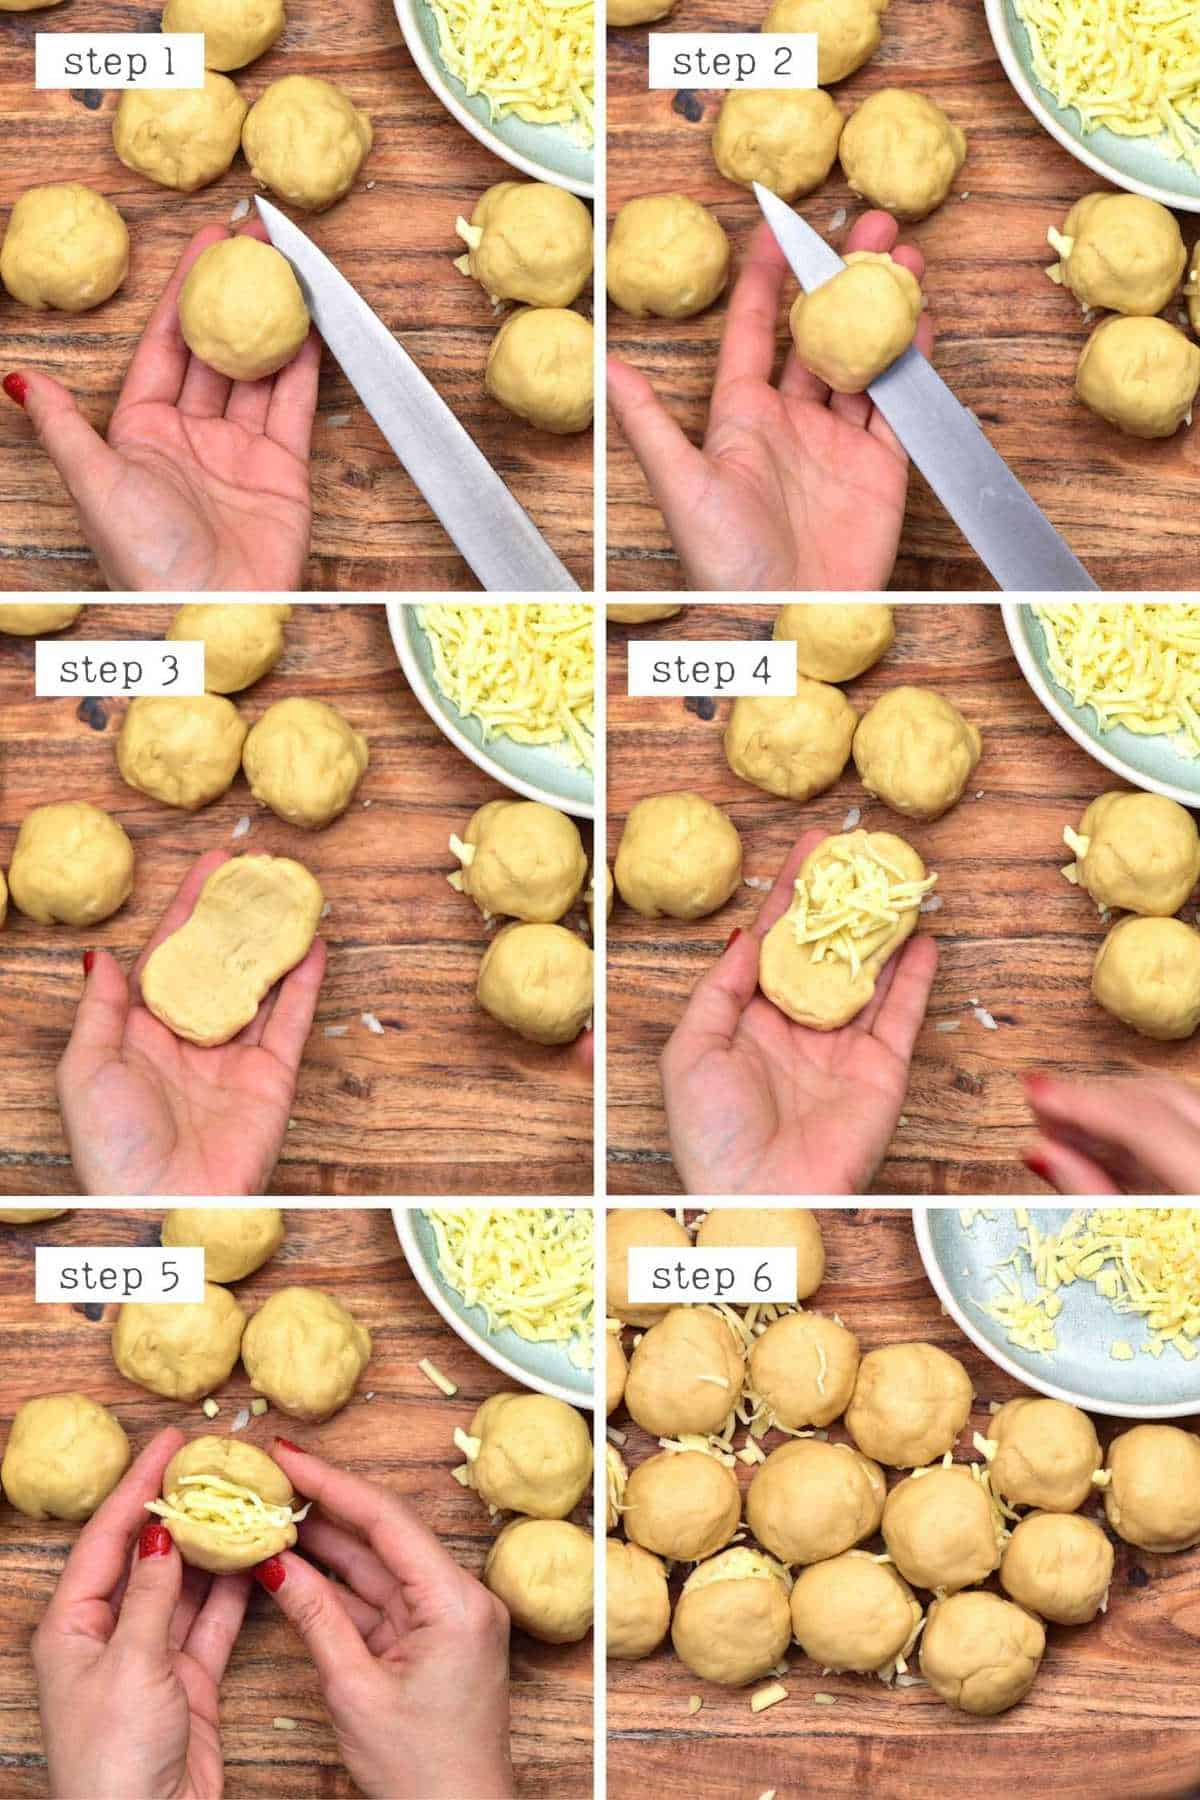 Steps for stuffing buns with cheese